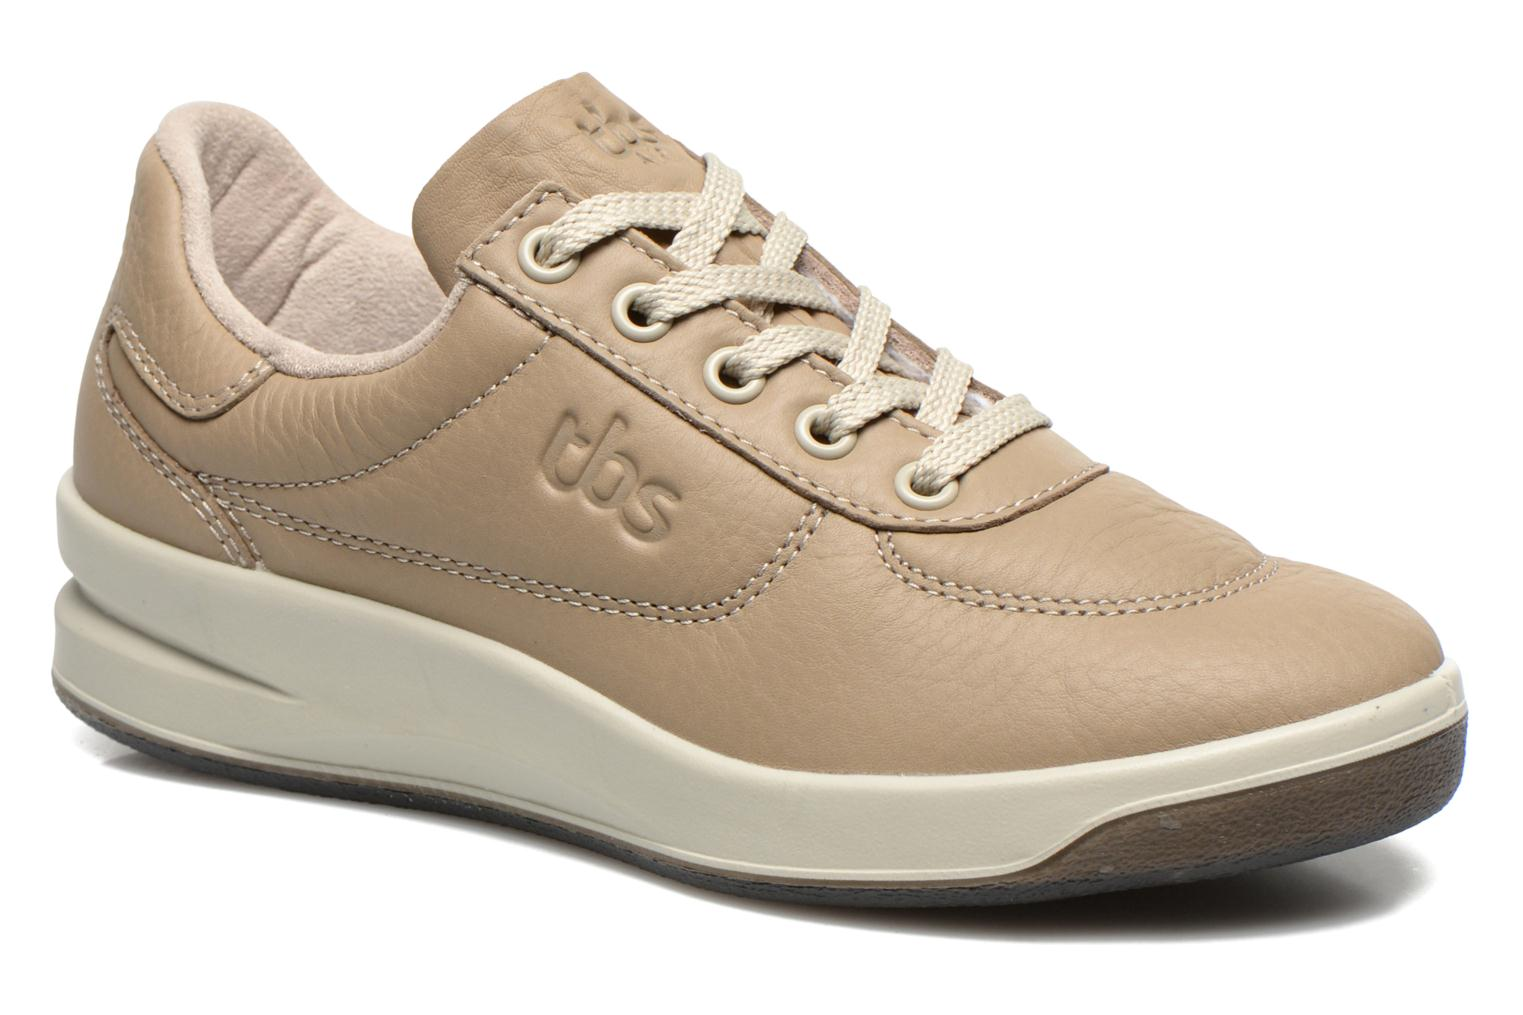 TBS Easy Walk Brandy (Beige) - Baskets en Más cómodo Chaussures casual sauvages